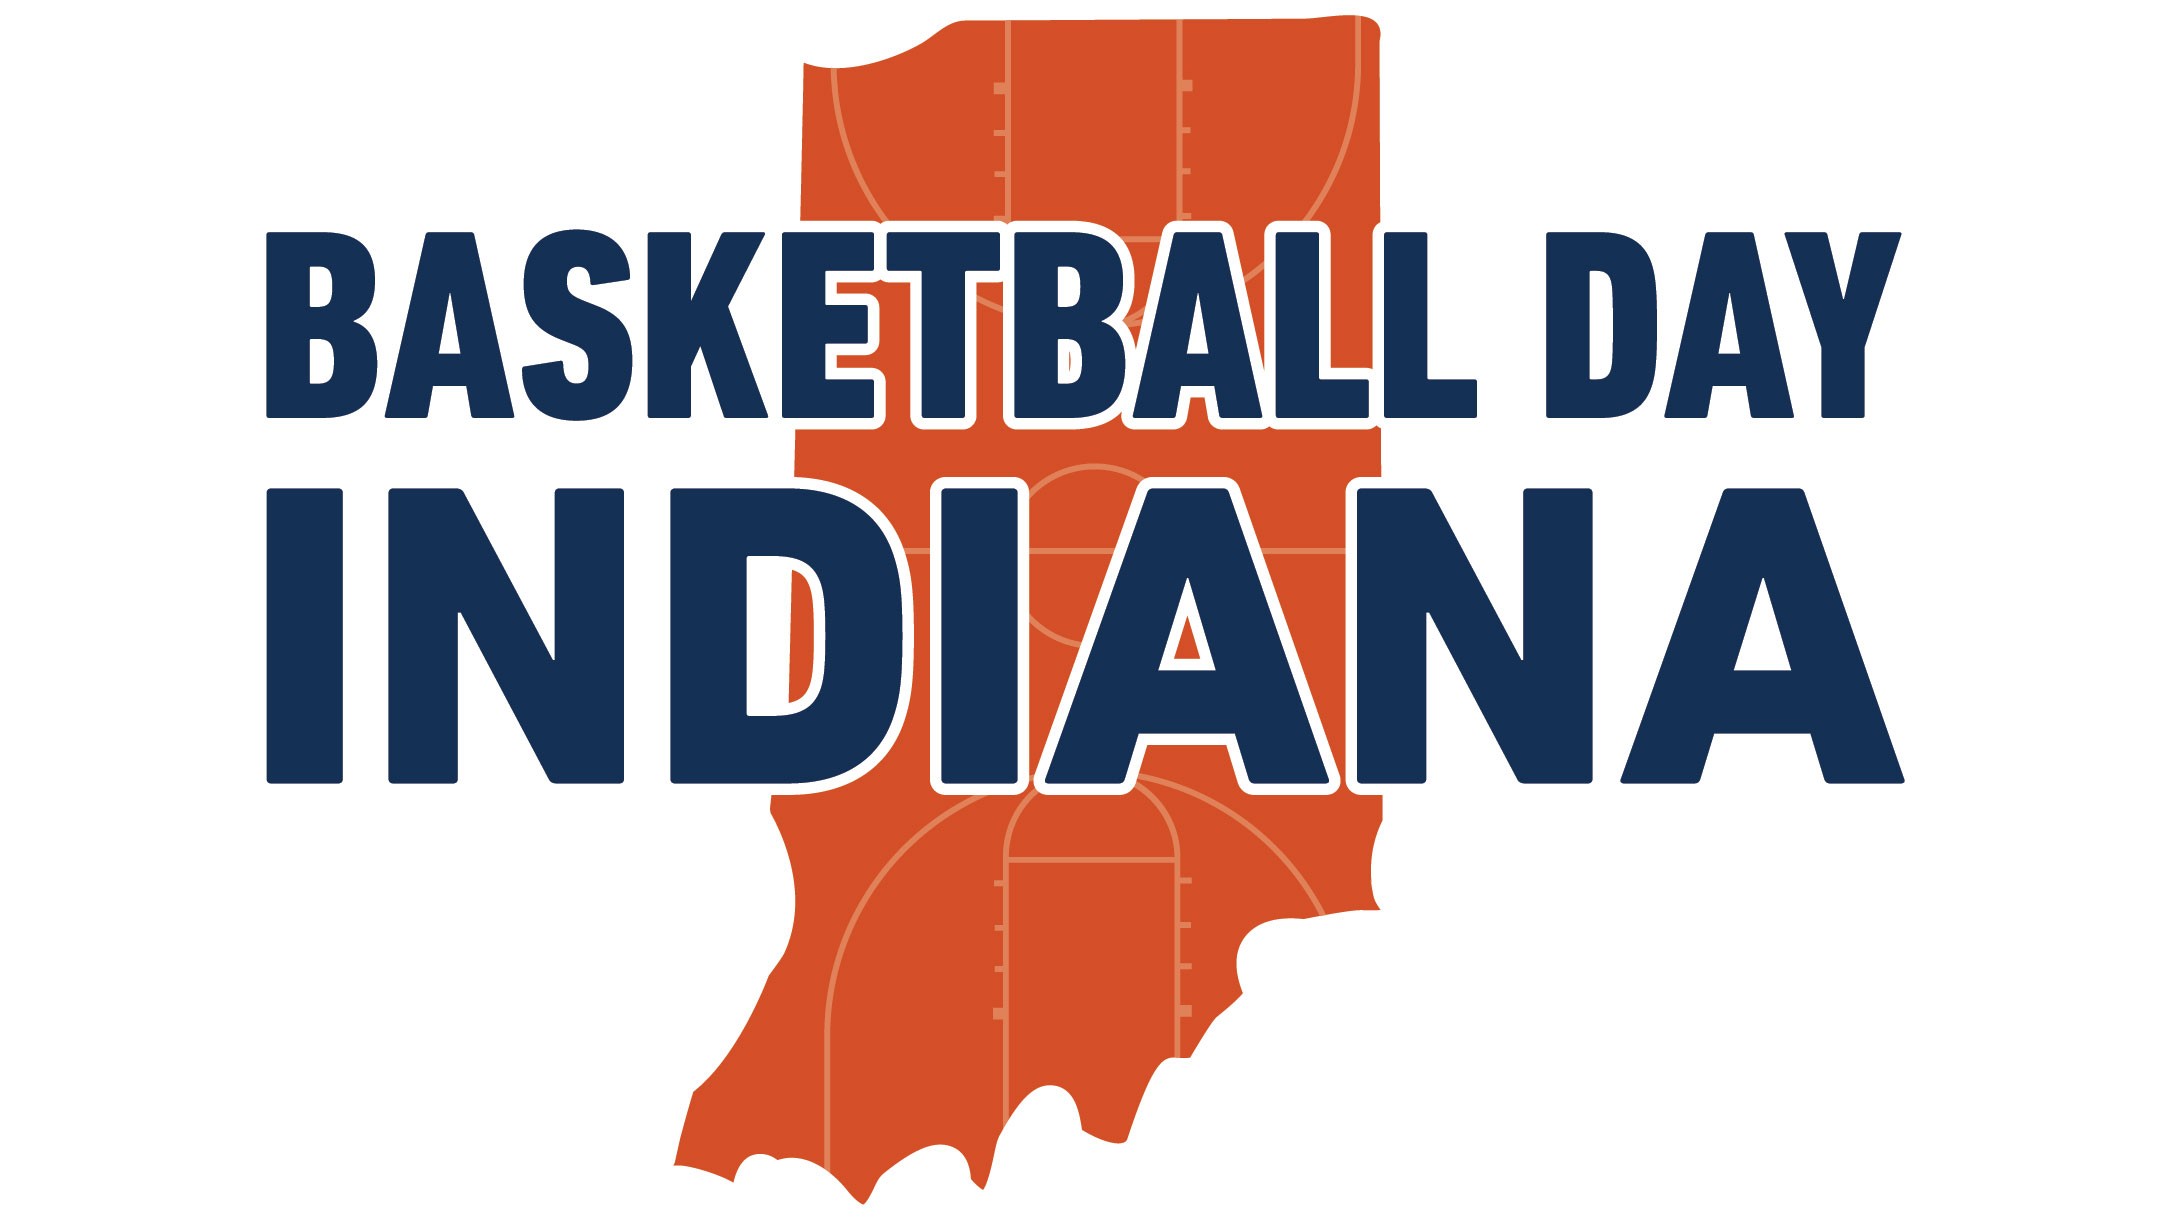 Basketball-Day-Indiana-logo